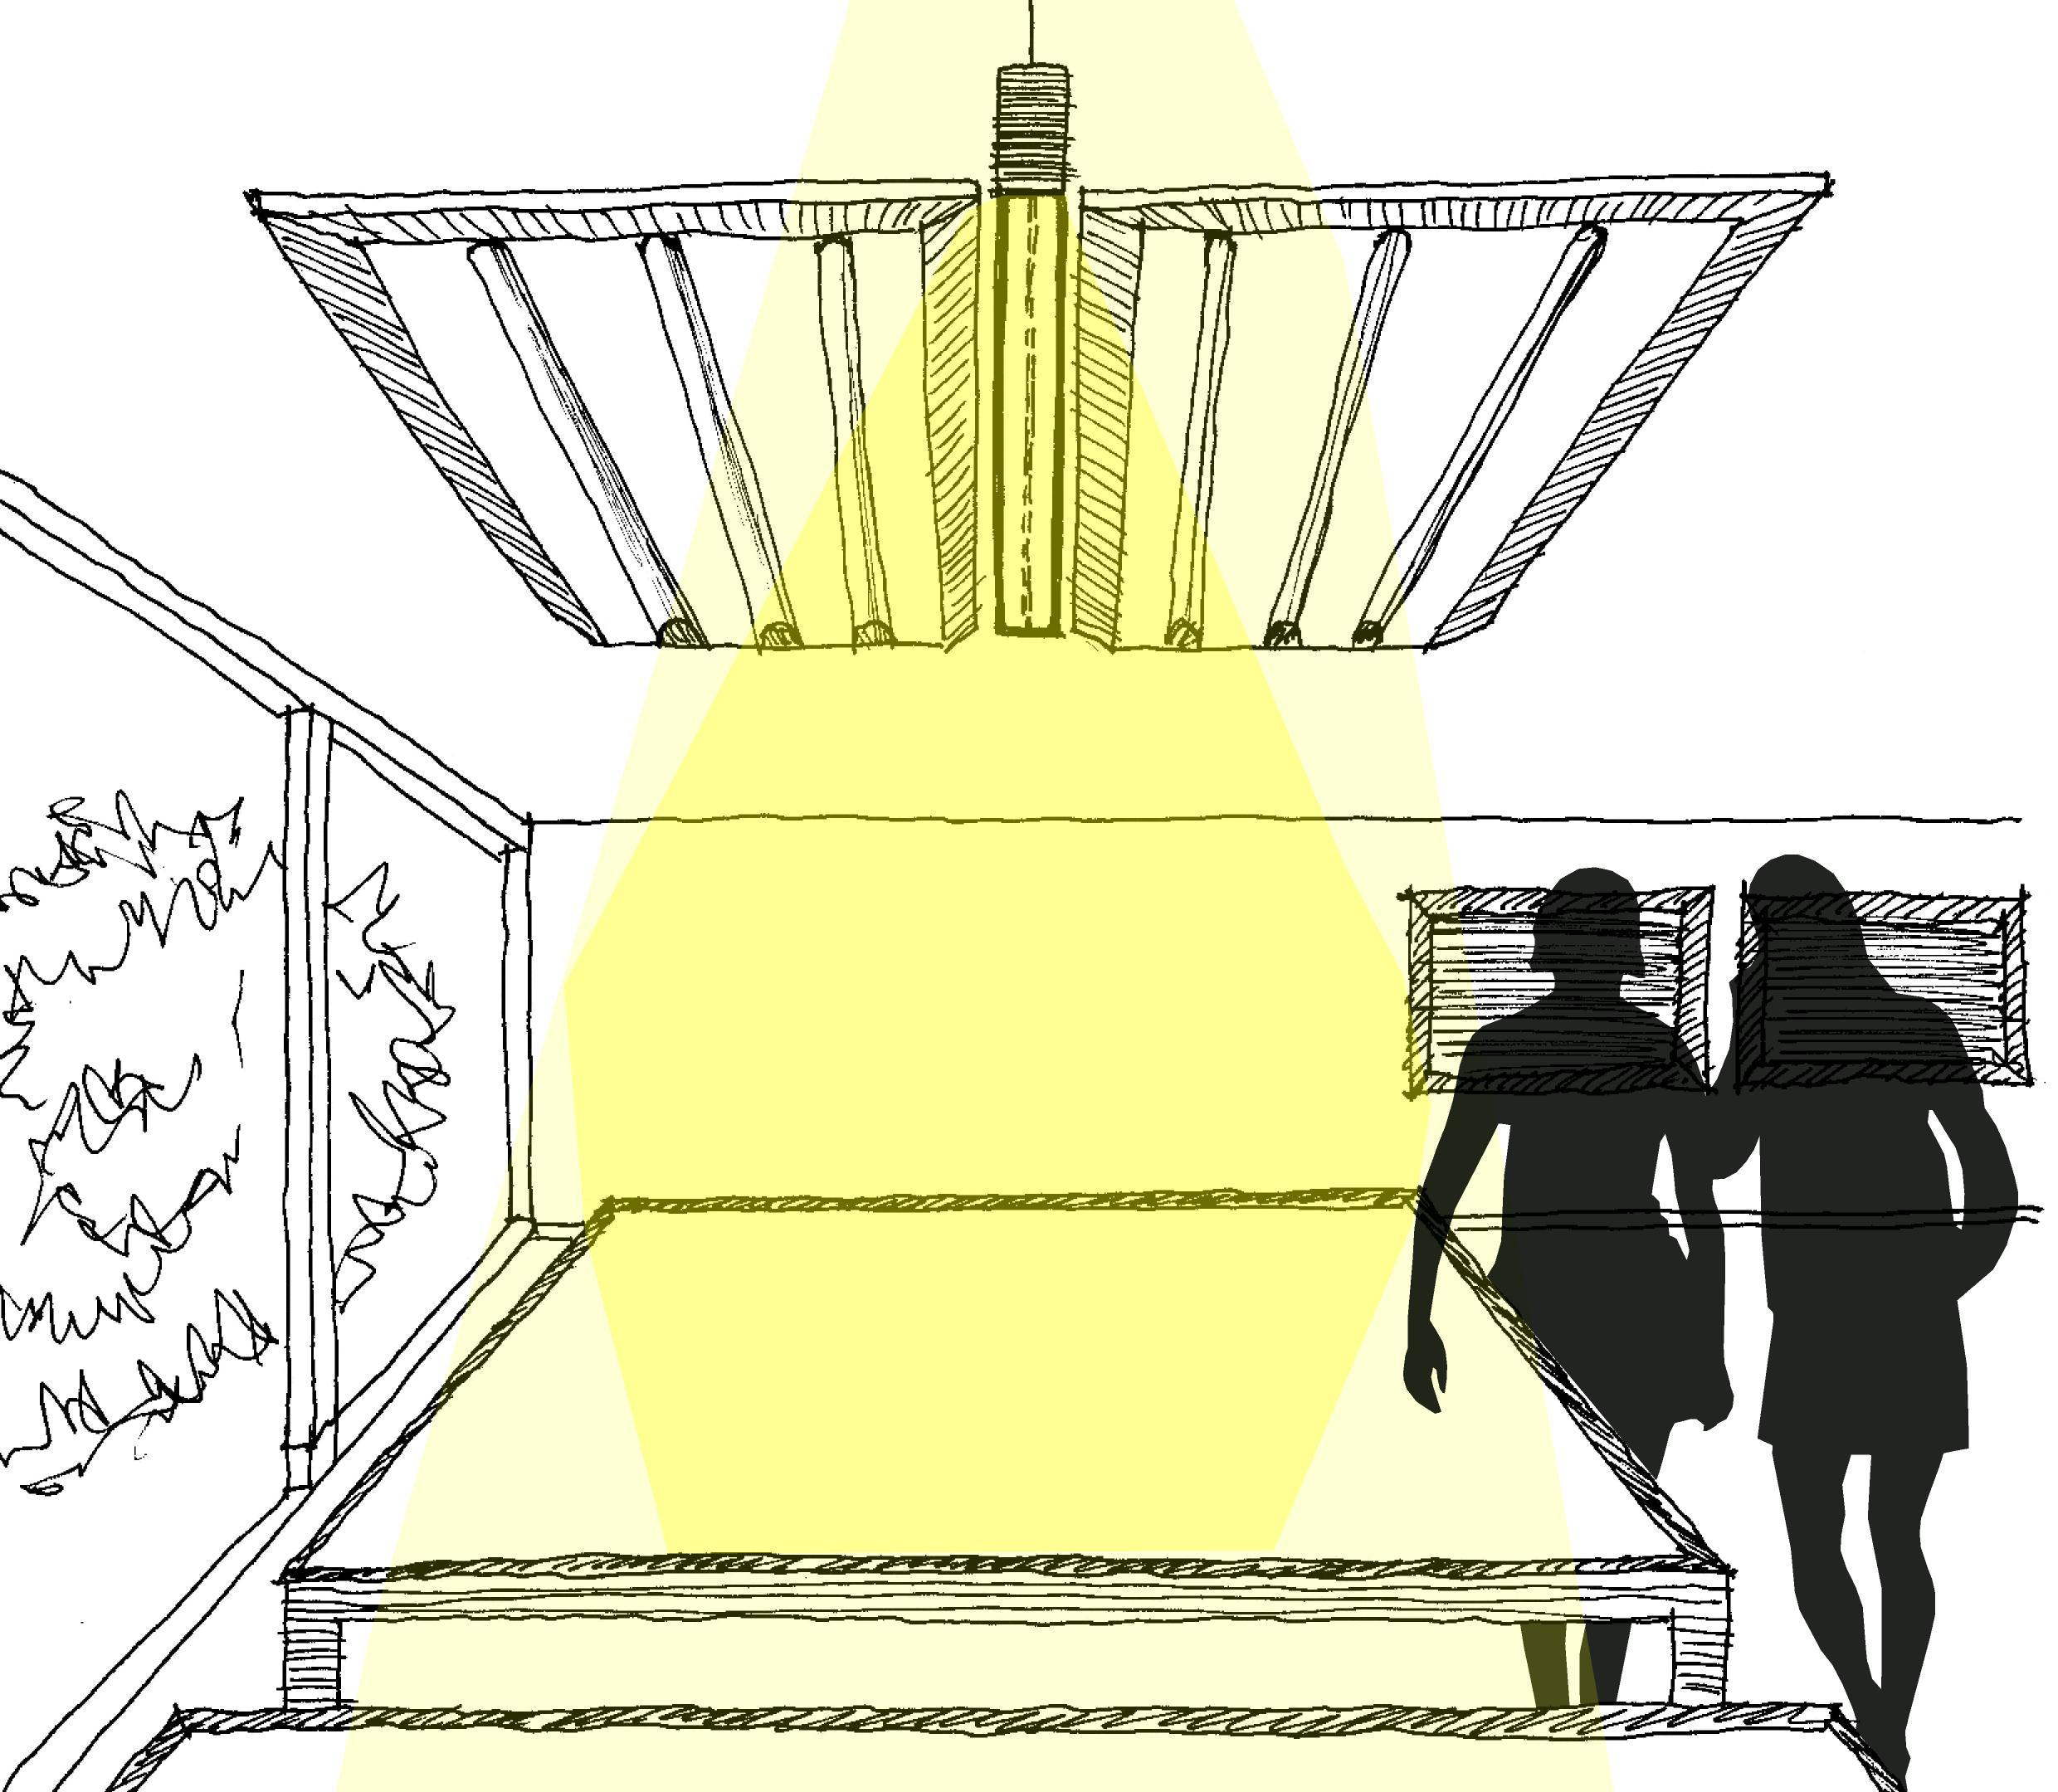 Diade lighting and sound absorption system - Sketch - Monica Armani for Luceplan